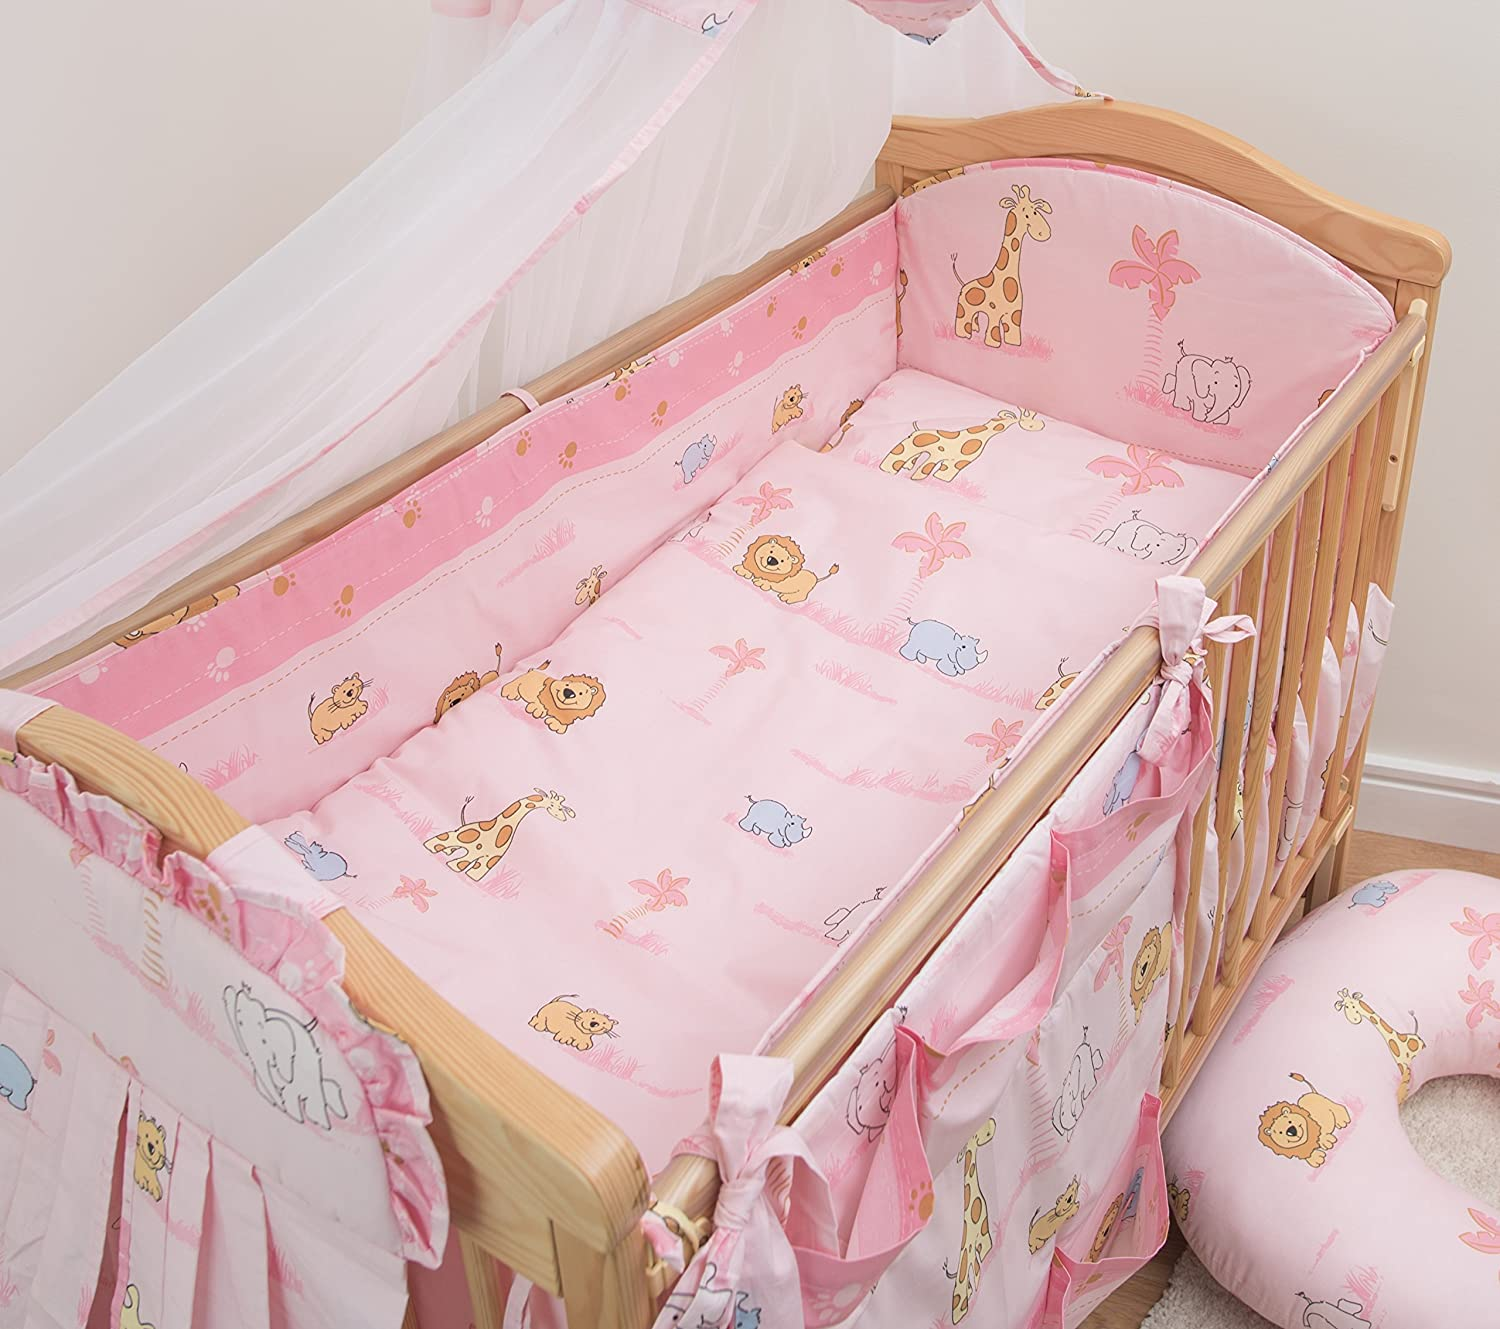 5 Pcs Baby Nursery Bedding Set, 140x70cm 420cm long Bumper, Suits Cot Bed - Pattern 9 BabyComfort